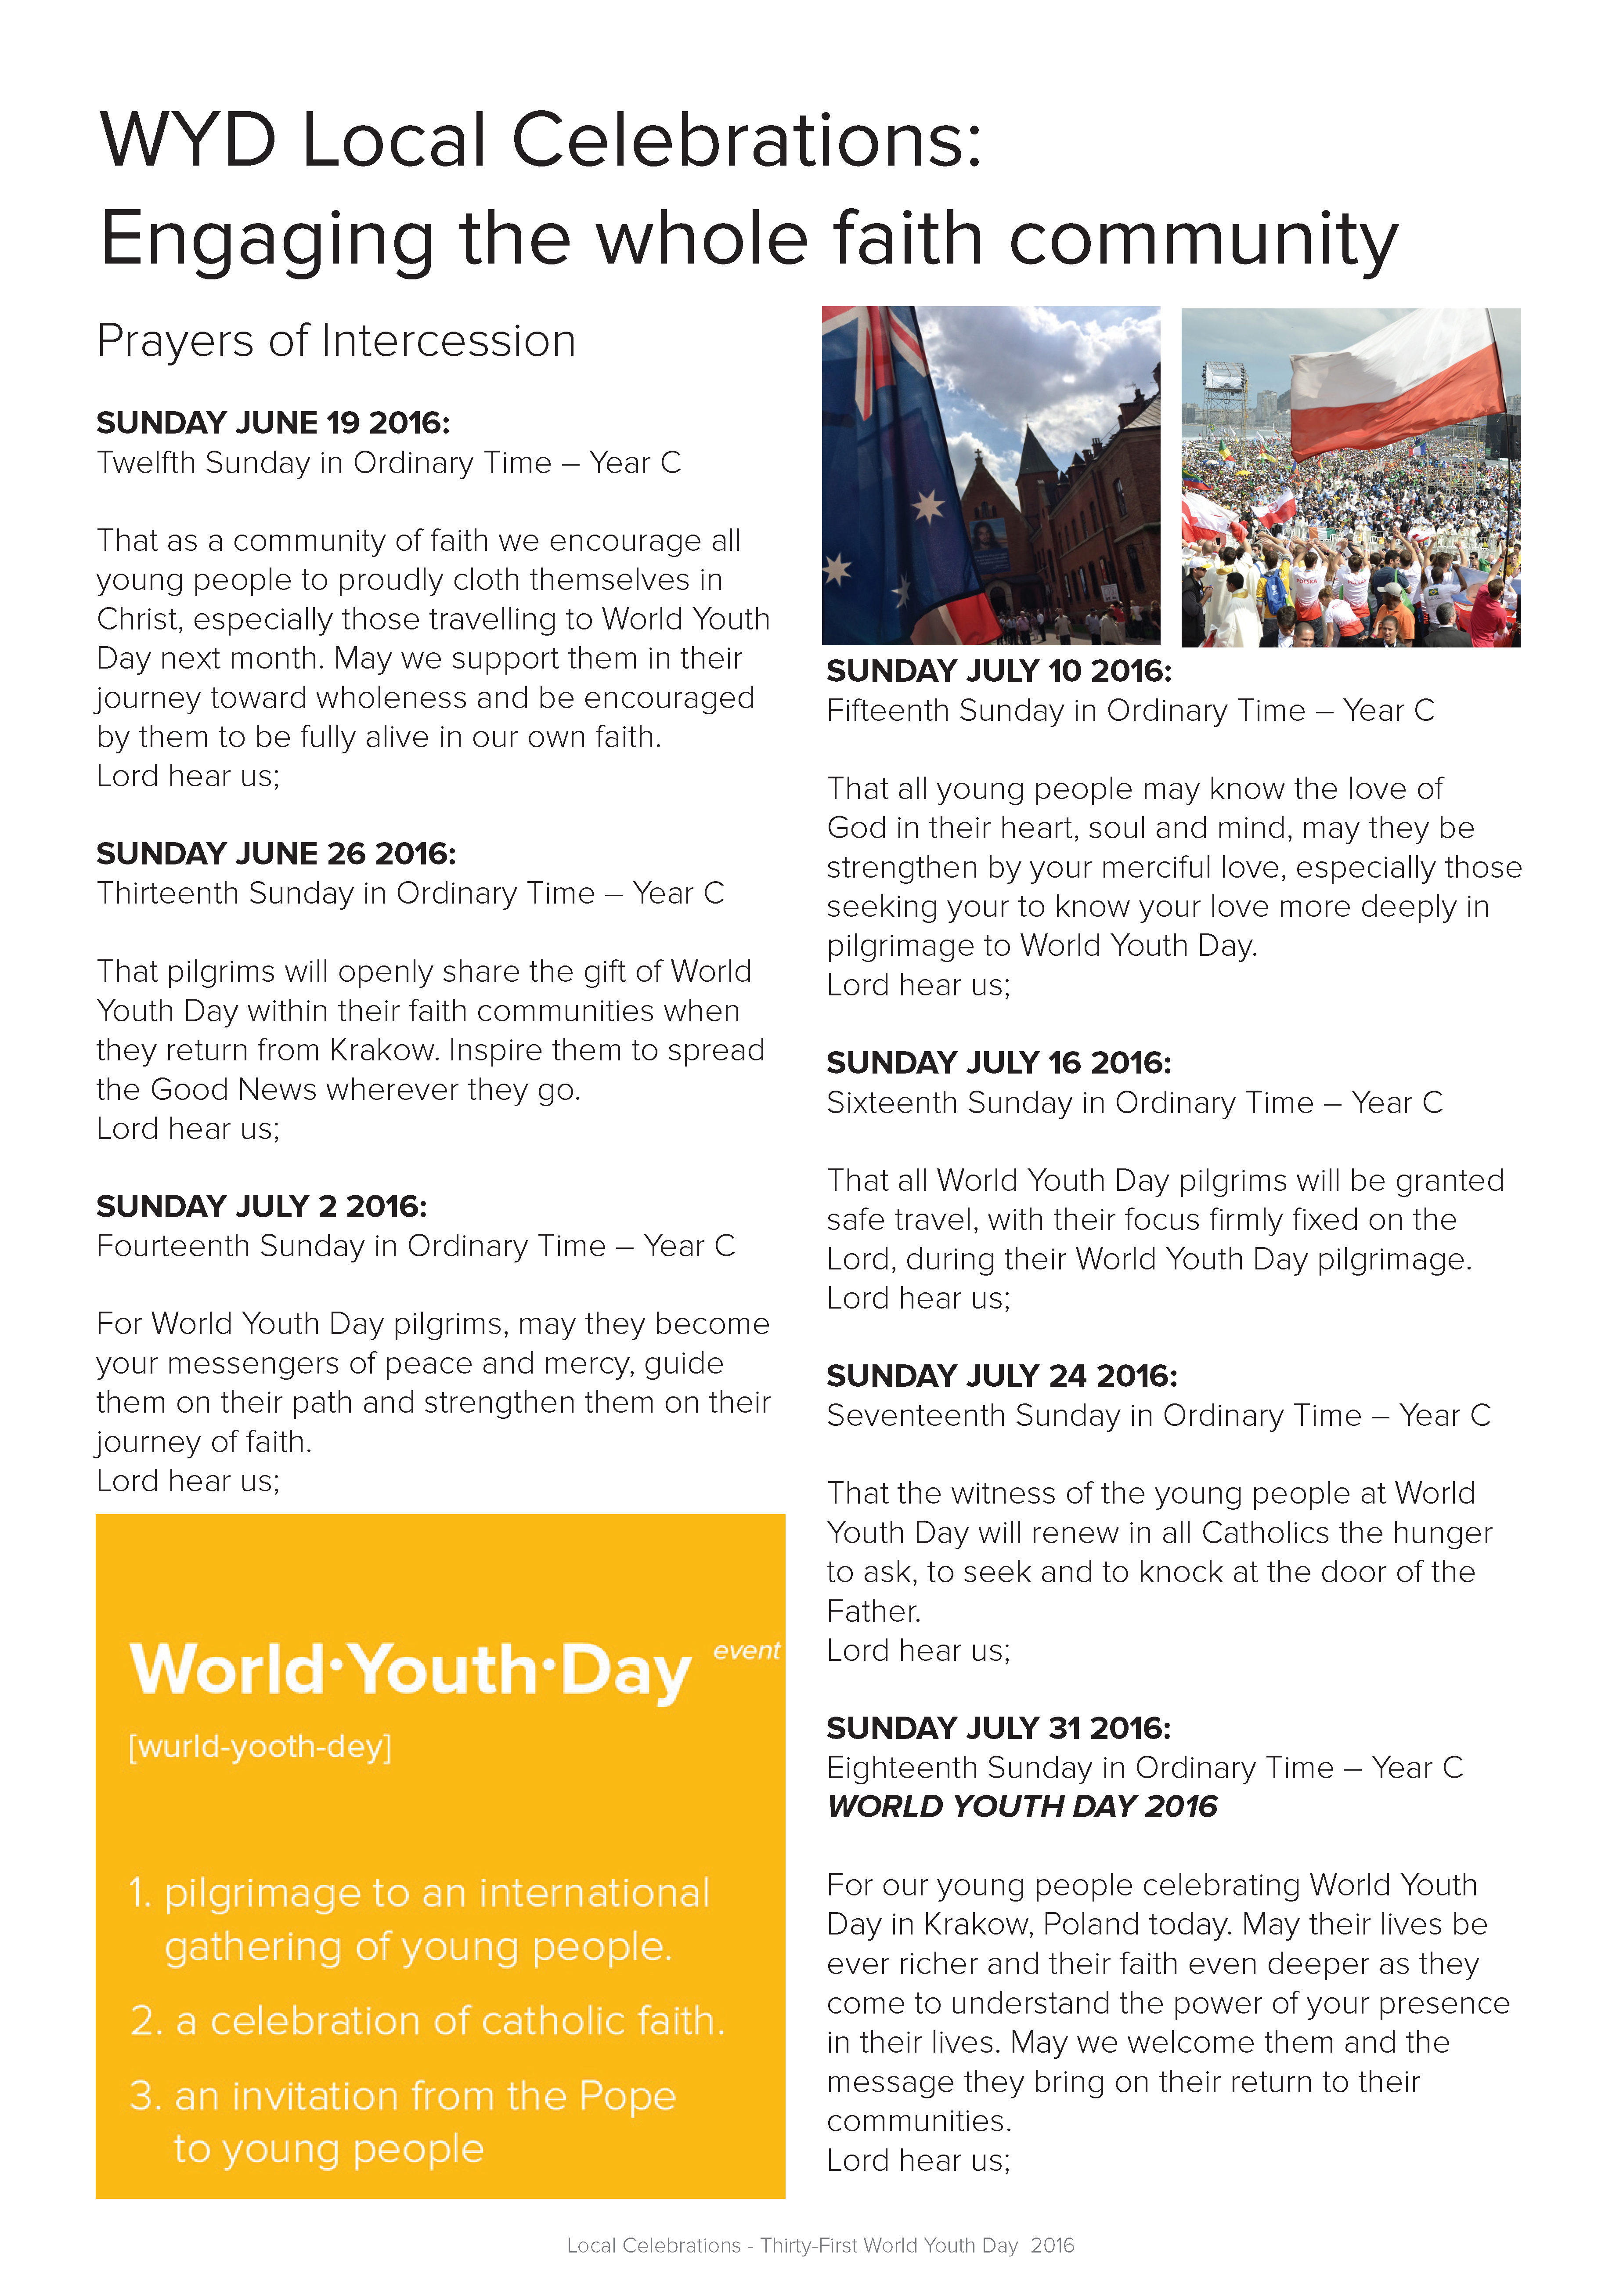 Local Celebrations WYD 2016 Page 1